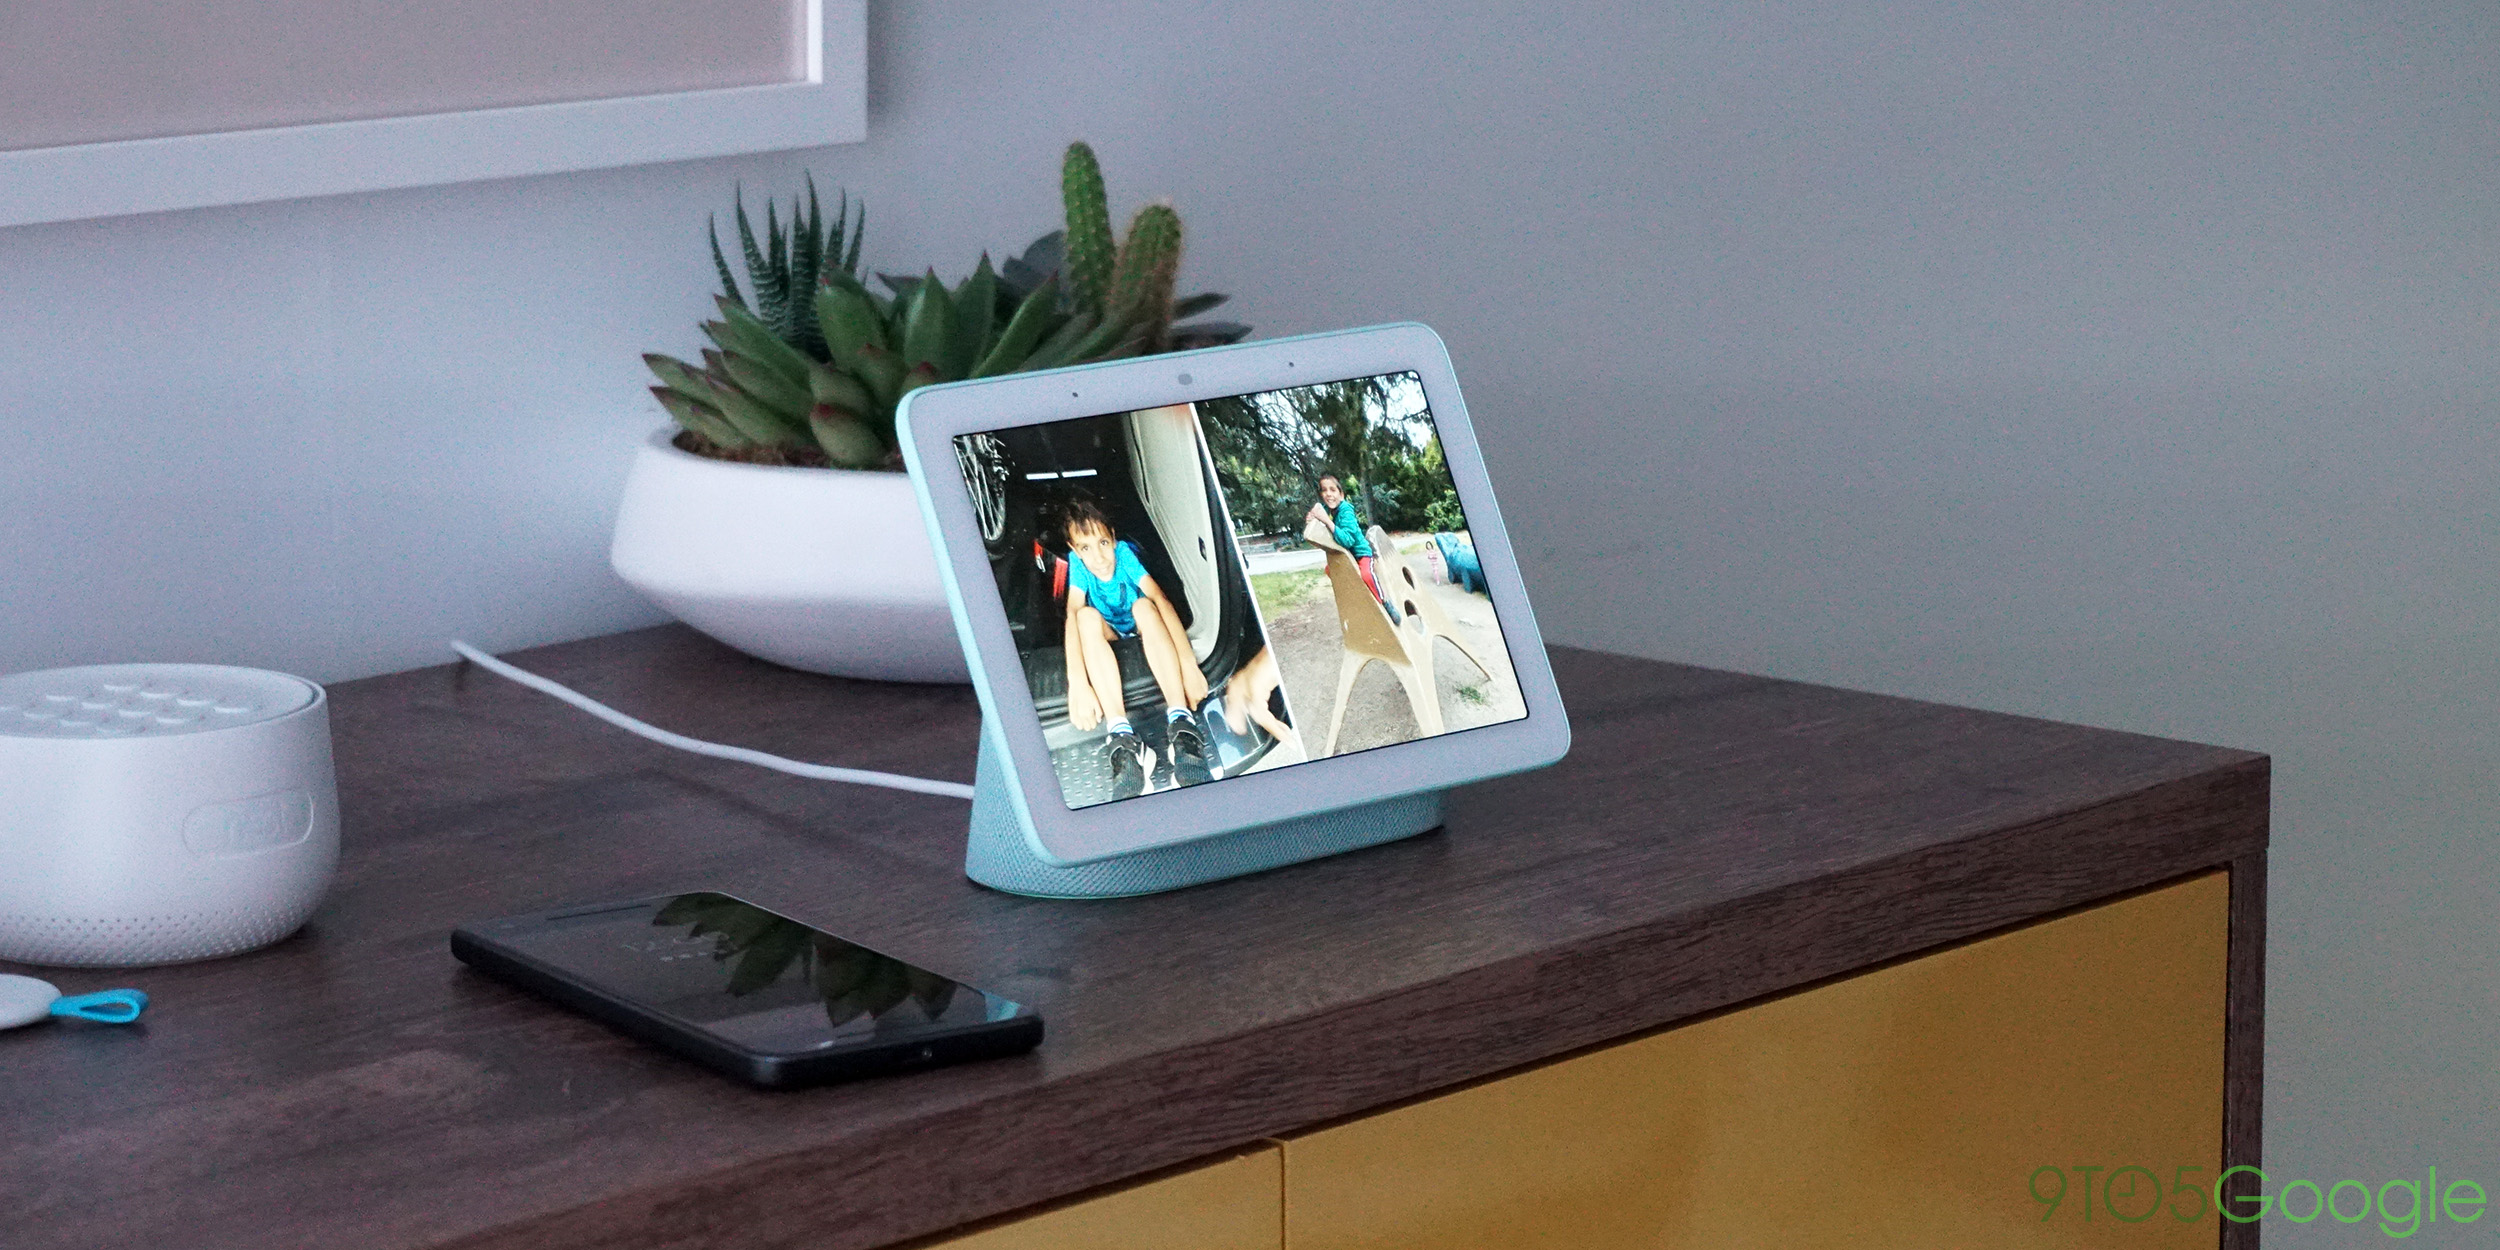 google home hub supports duo video calls after all recipients only see profile picture